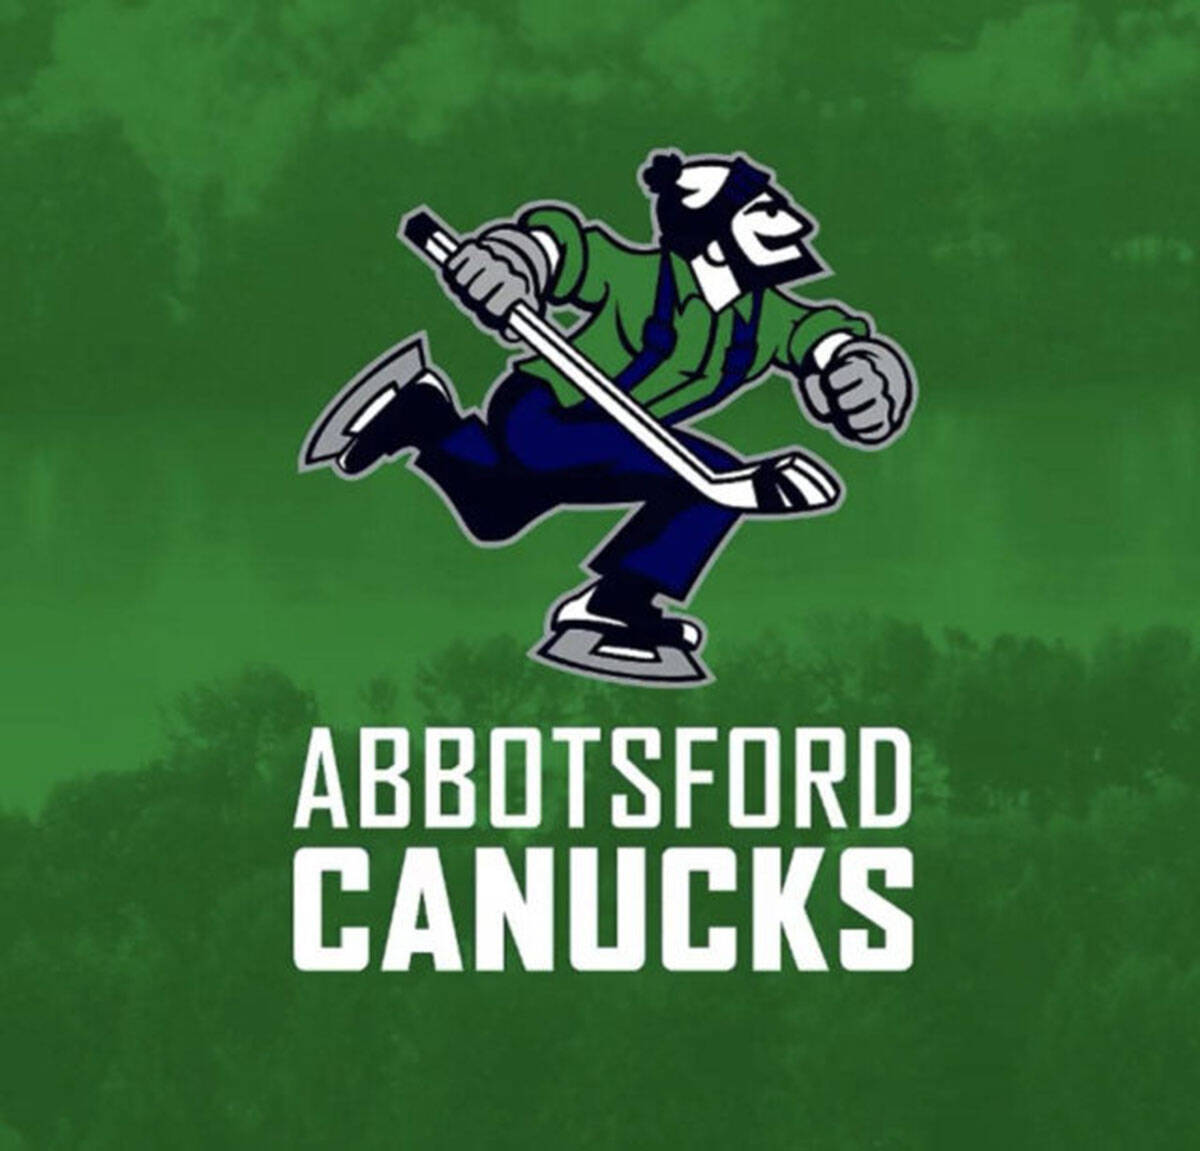 The Abbotsford Canucks training camp runs from Oct. 6 to 9 at the Abbotsford Centre.